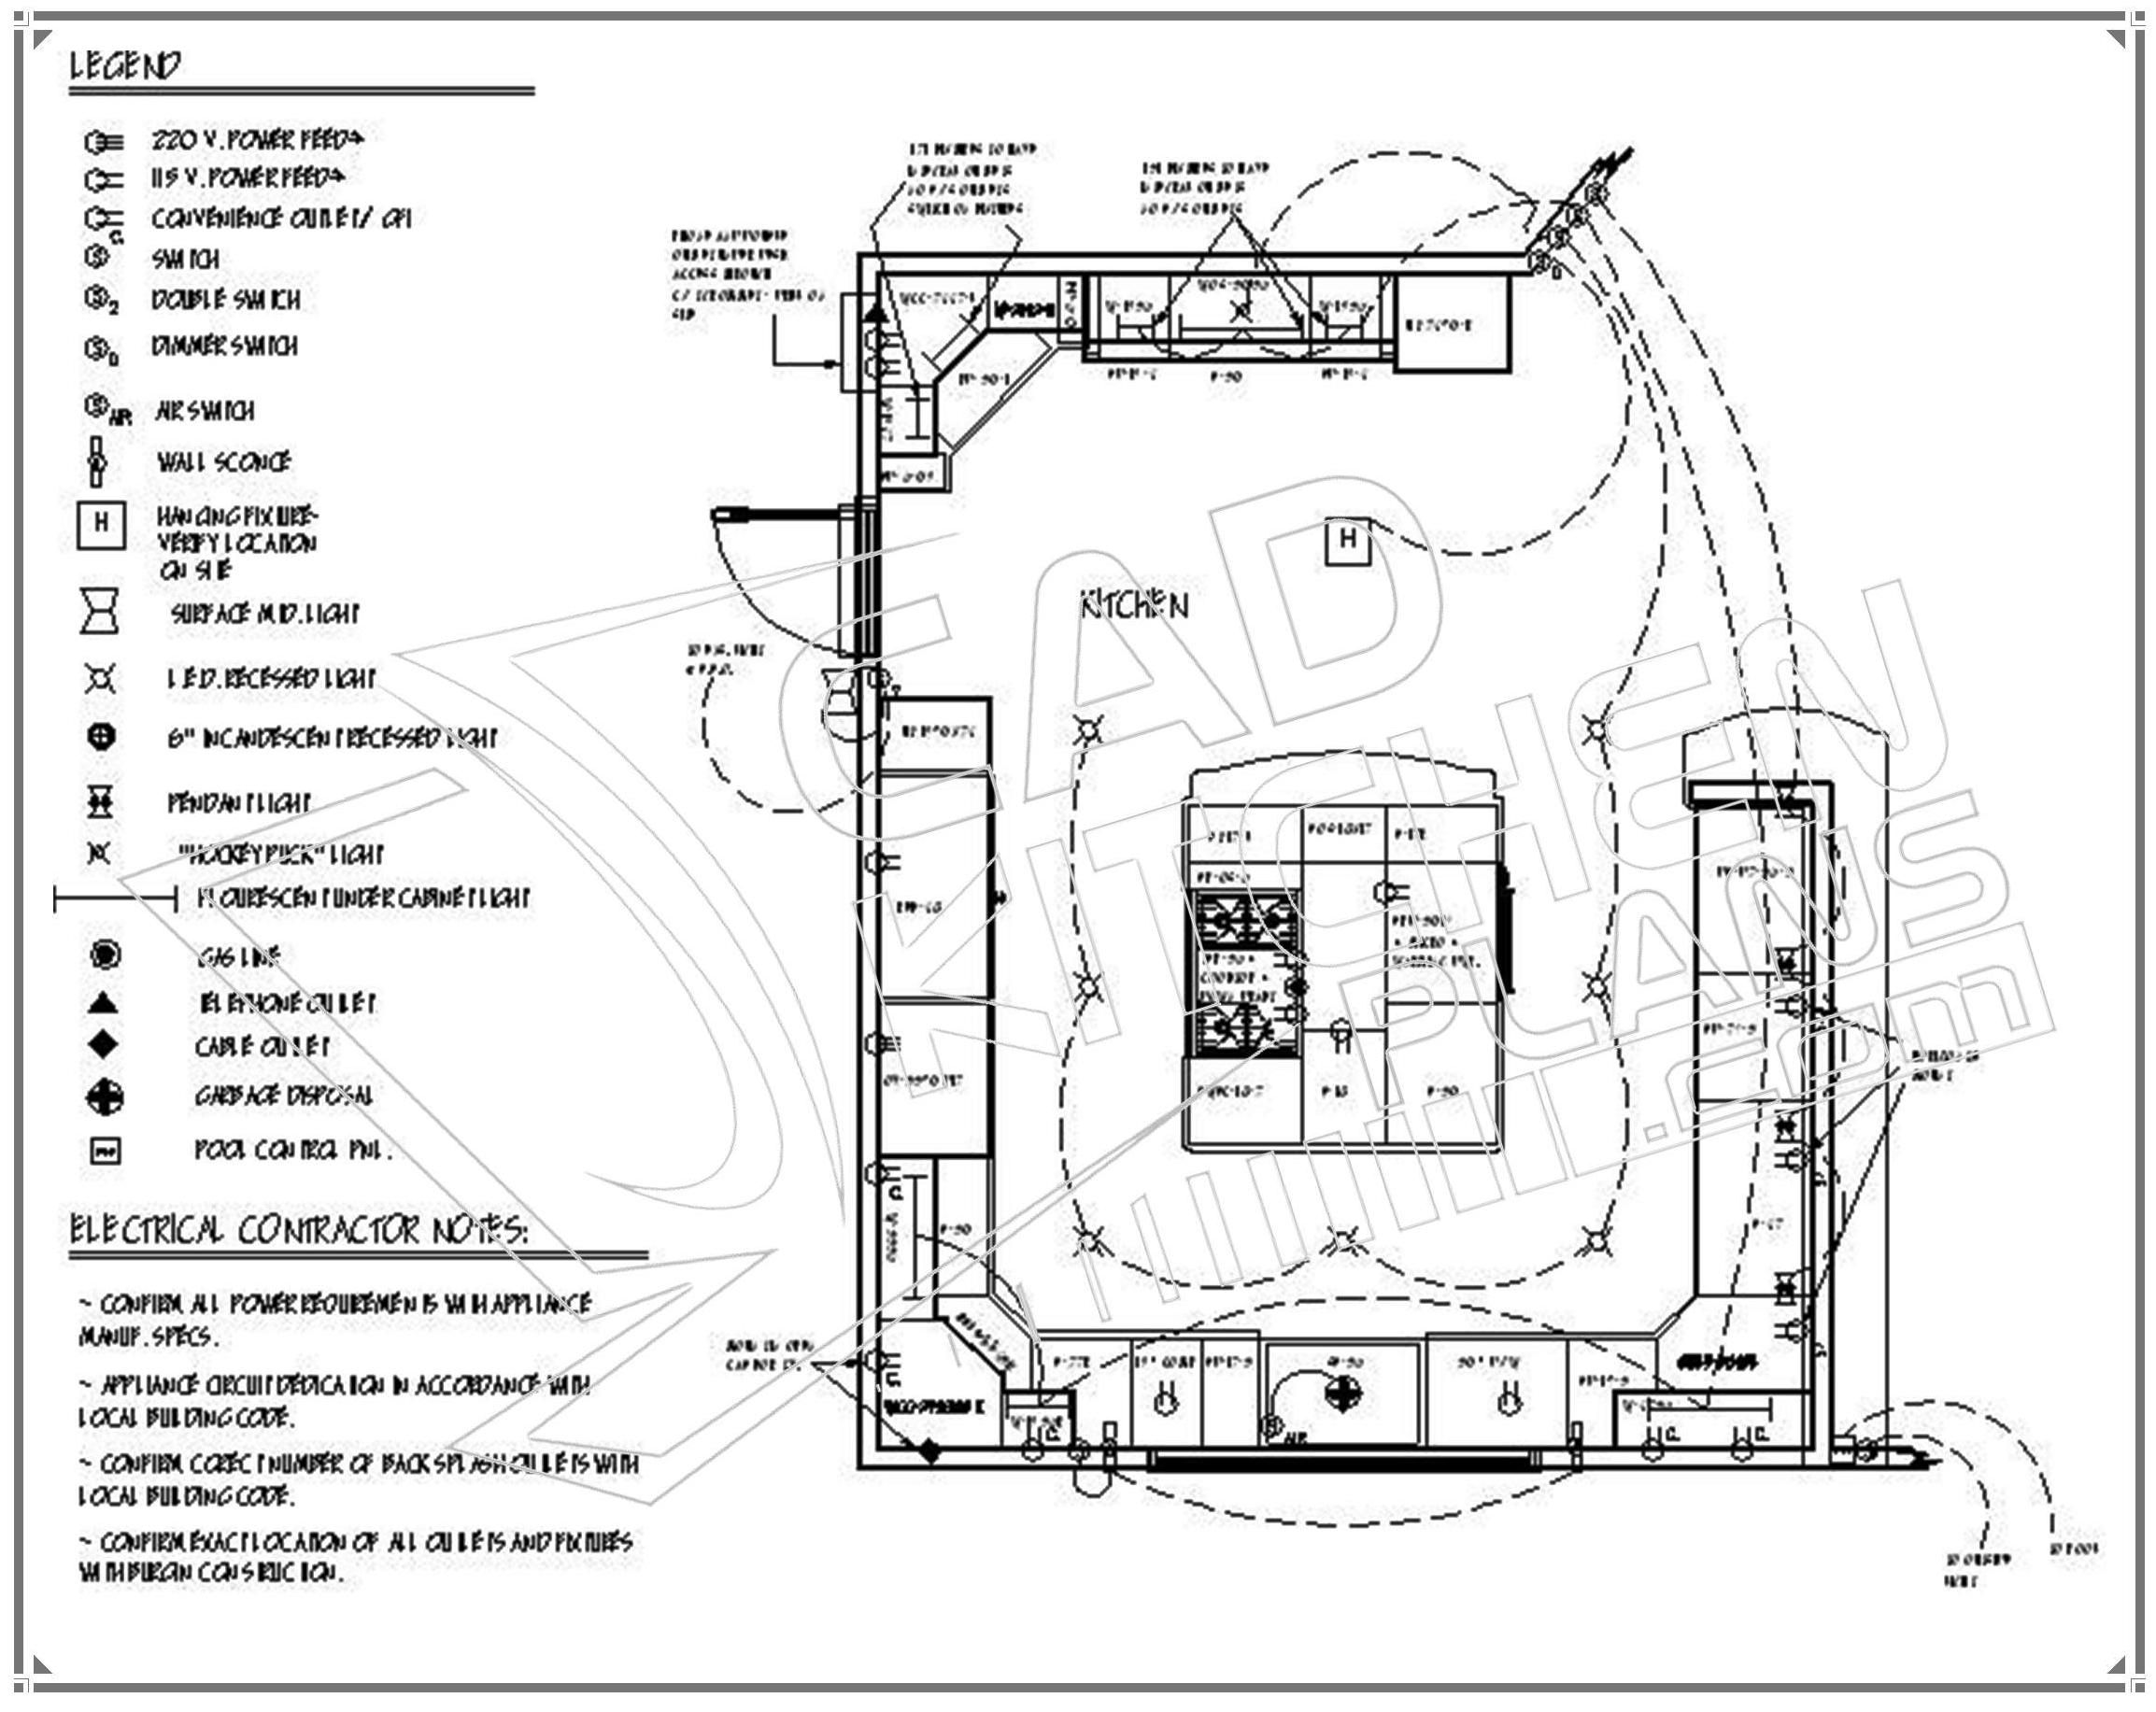 Kitchen plan and layout - We Are Giving You Some Detailed Information On Restaurant Kitchen Floor Plans Some Tips And